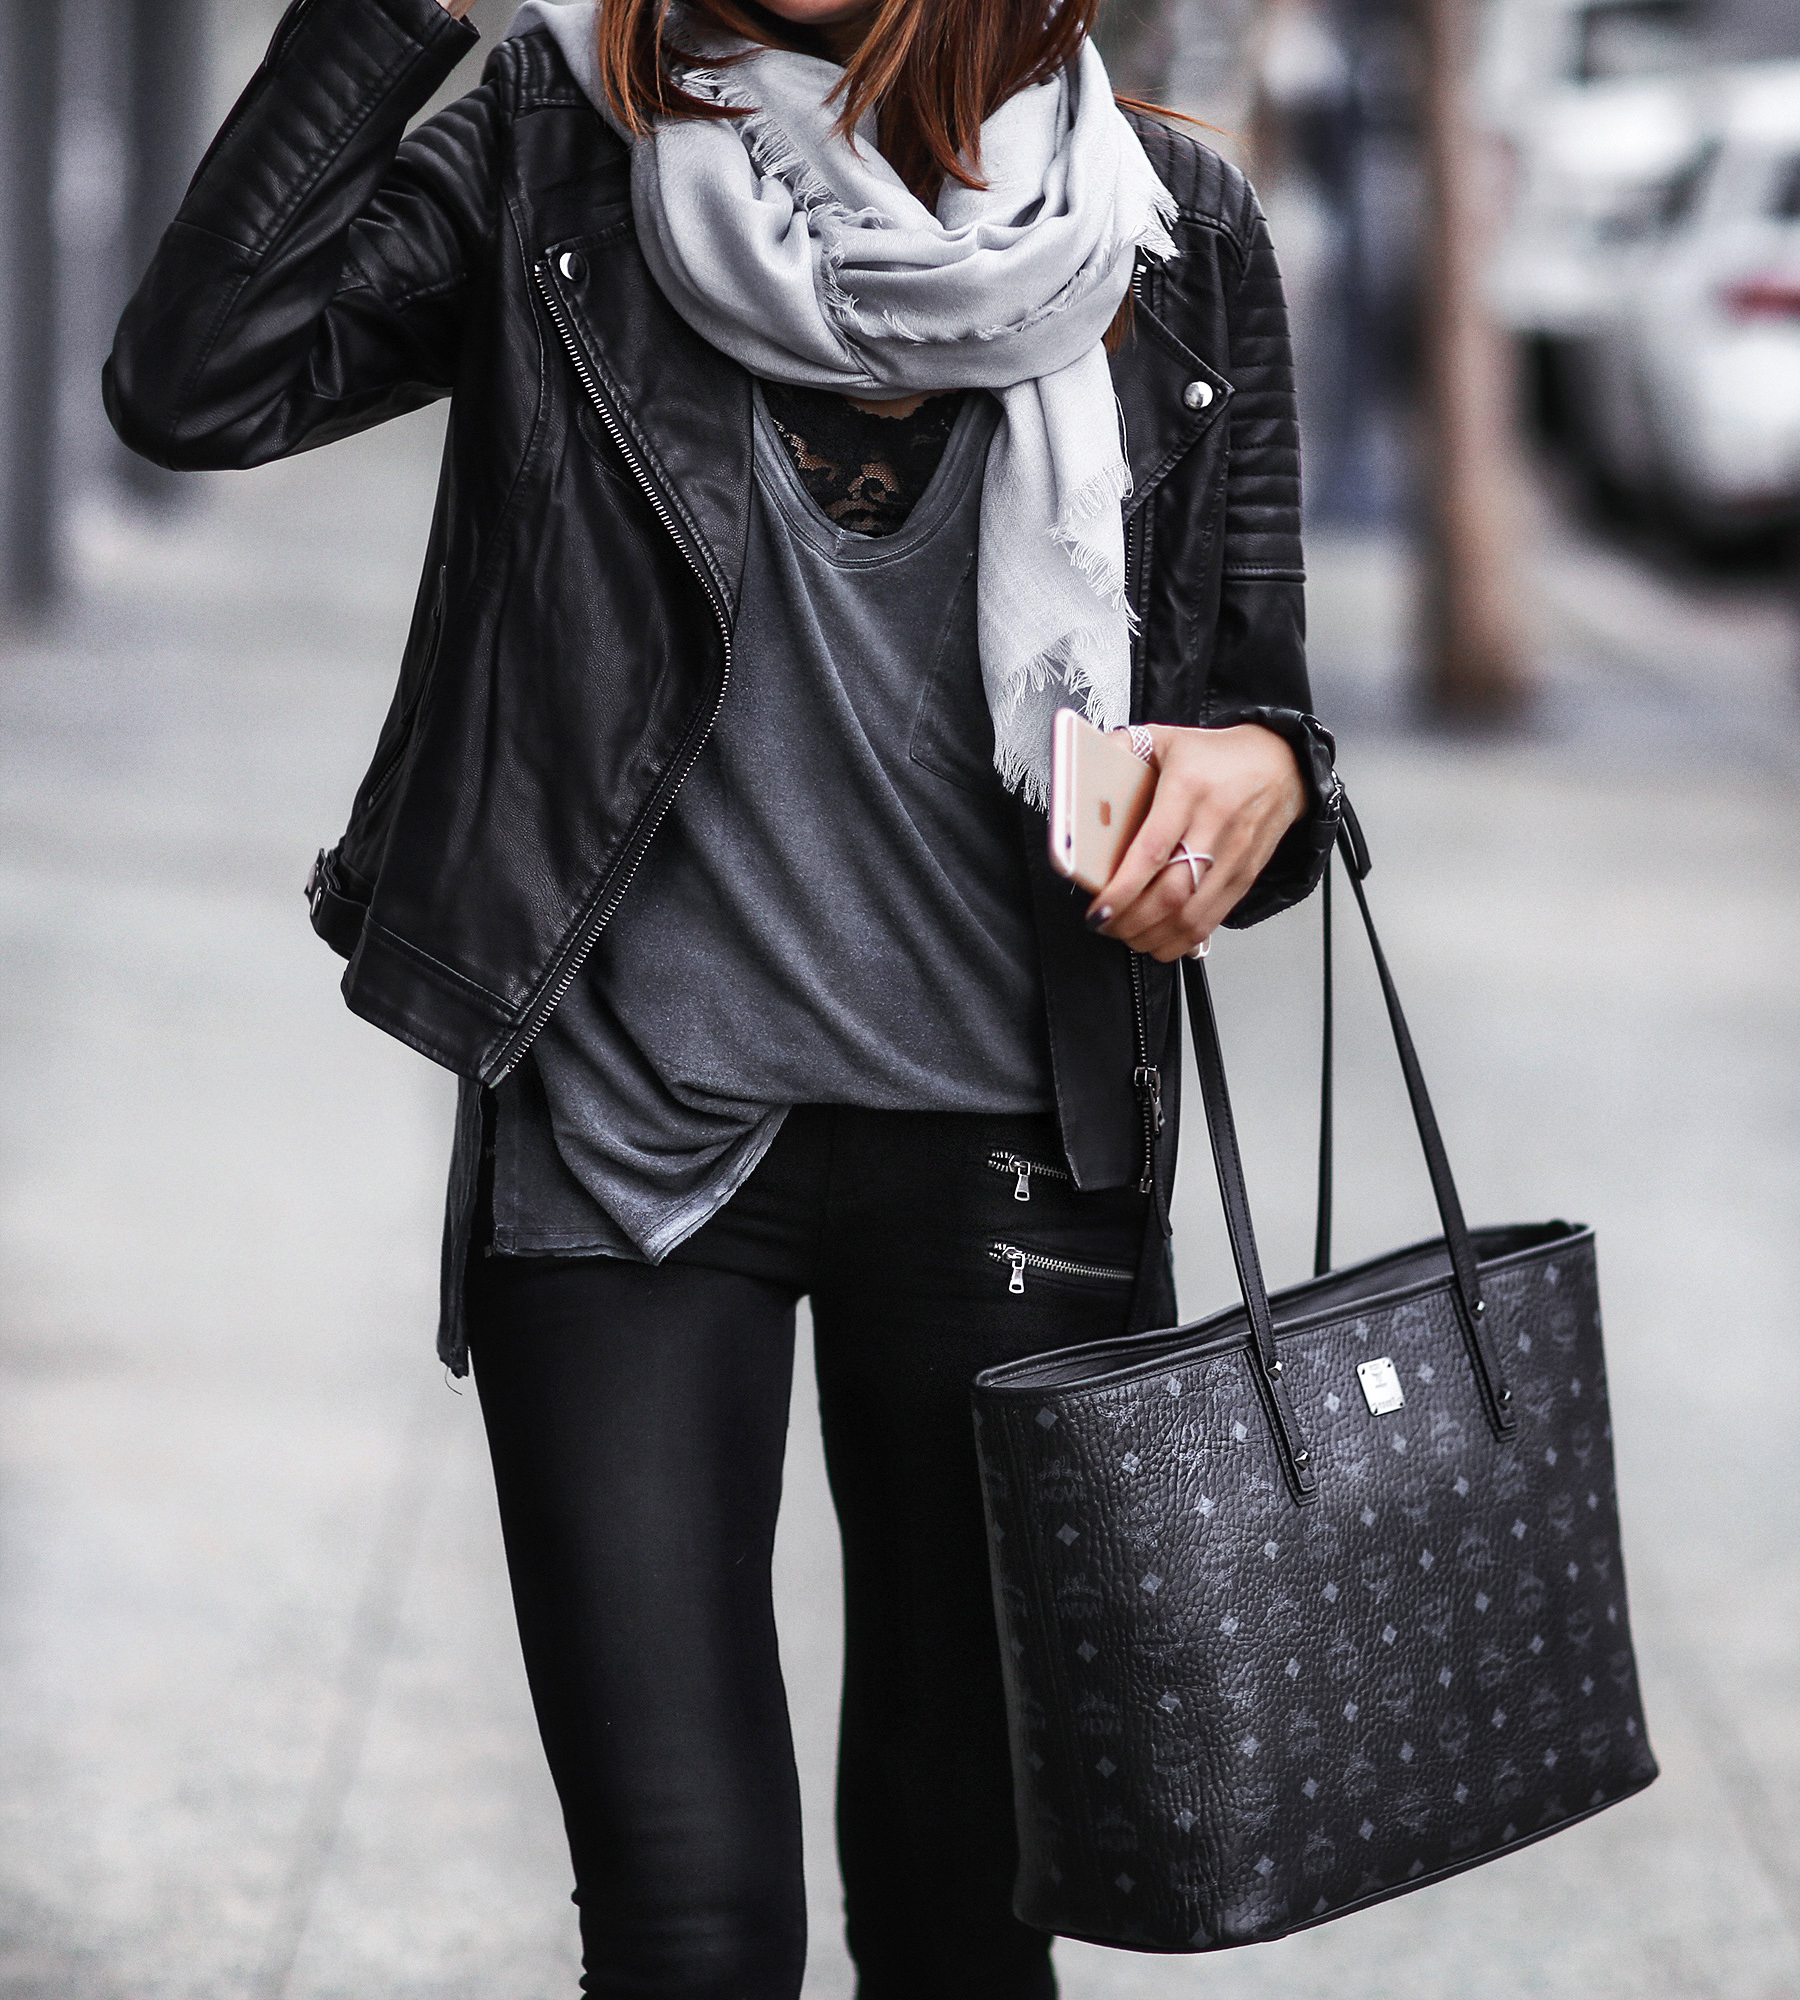 scarf, leather jacket, chic tote bag